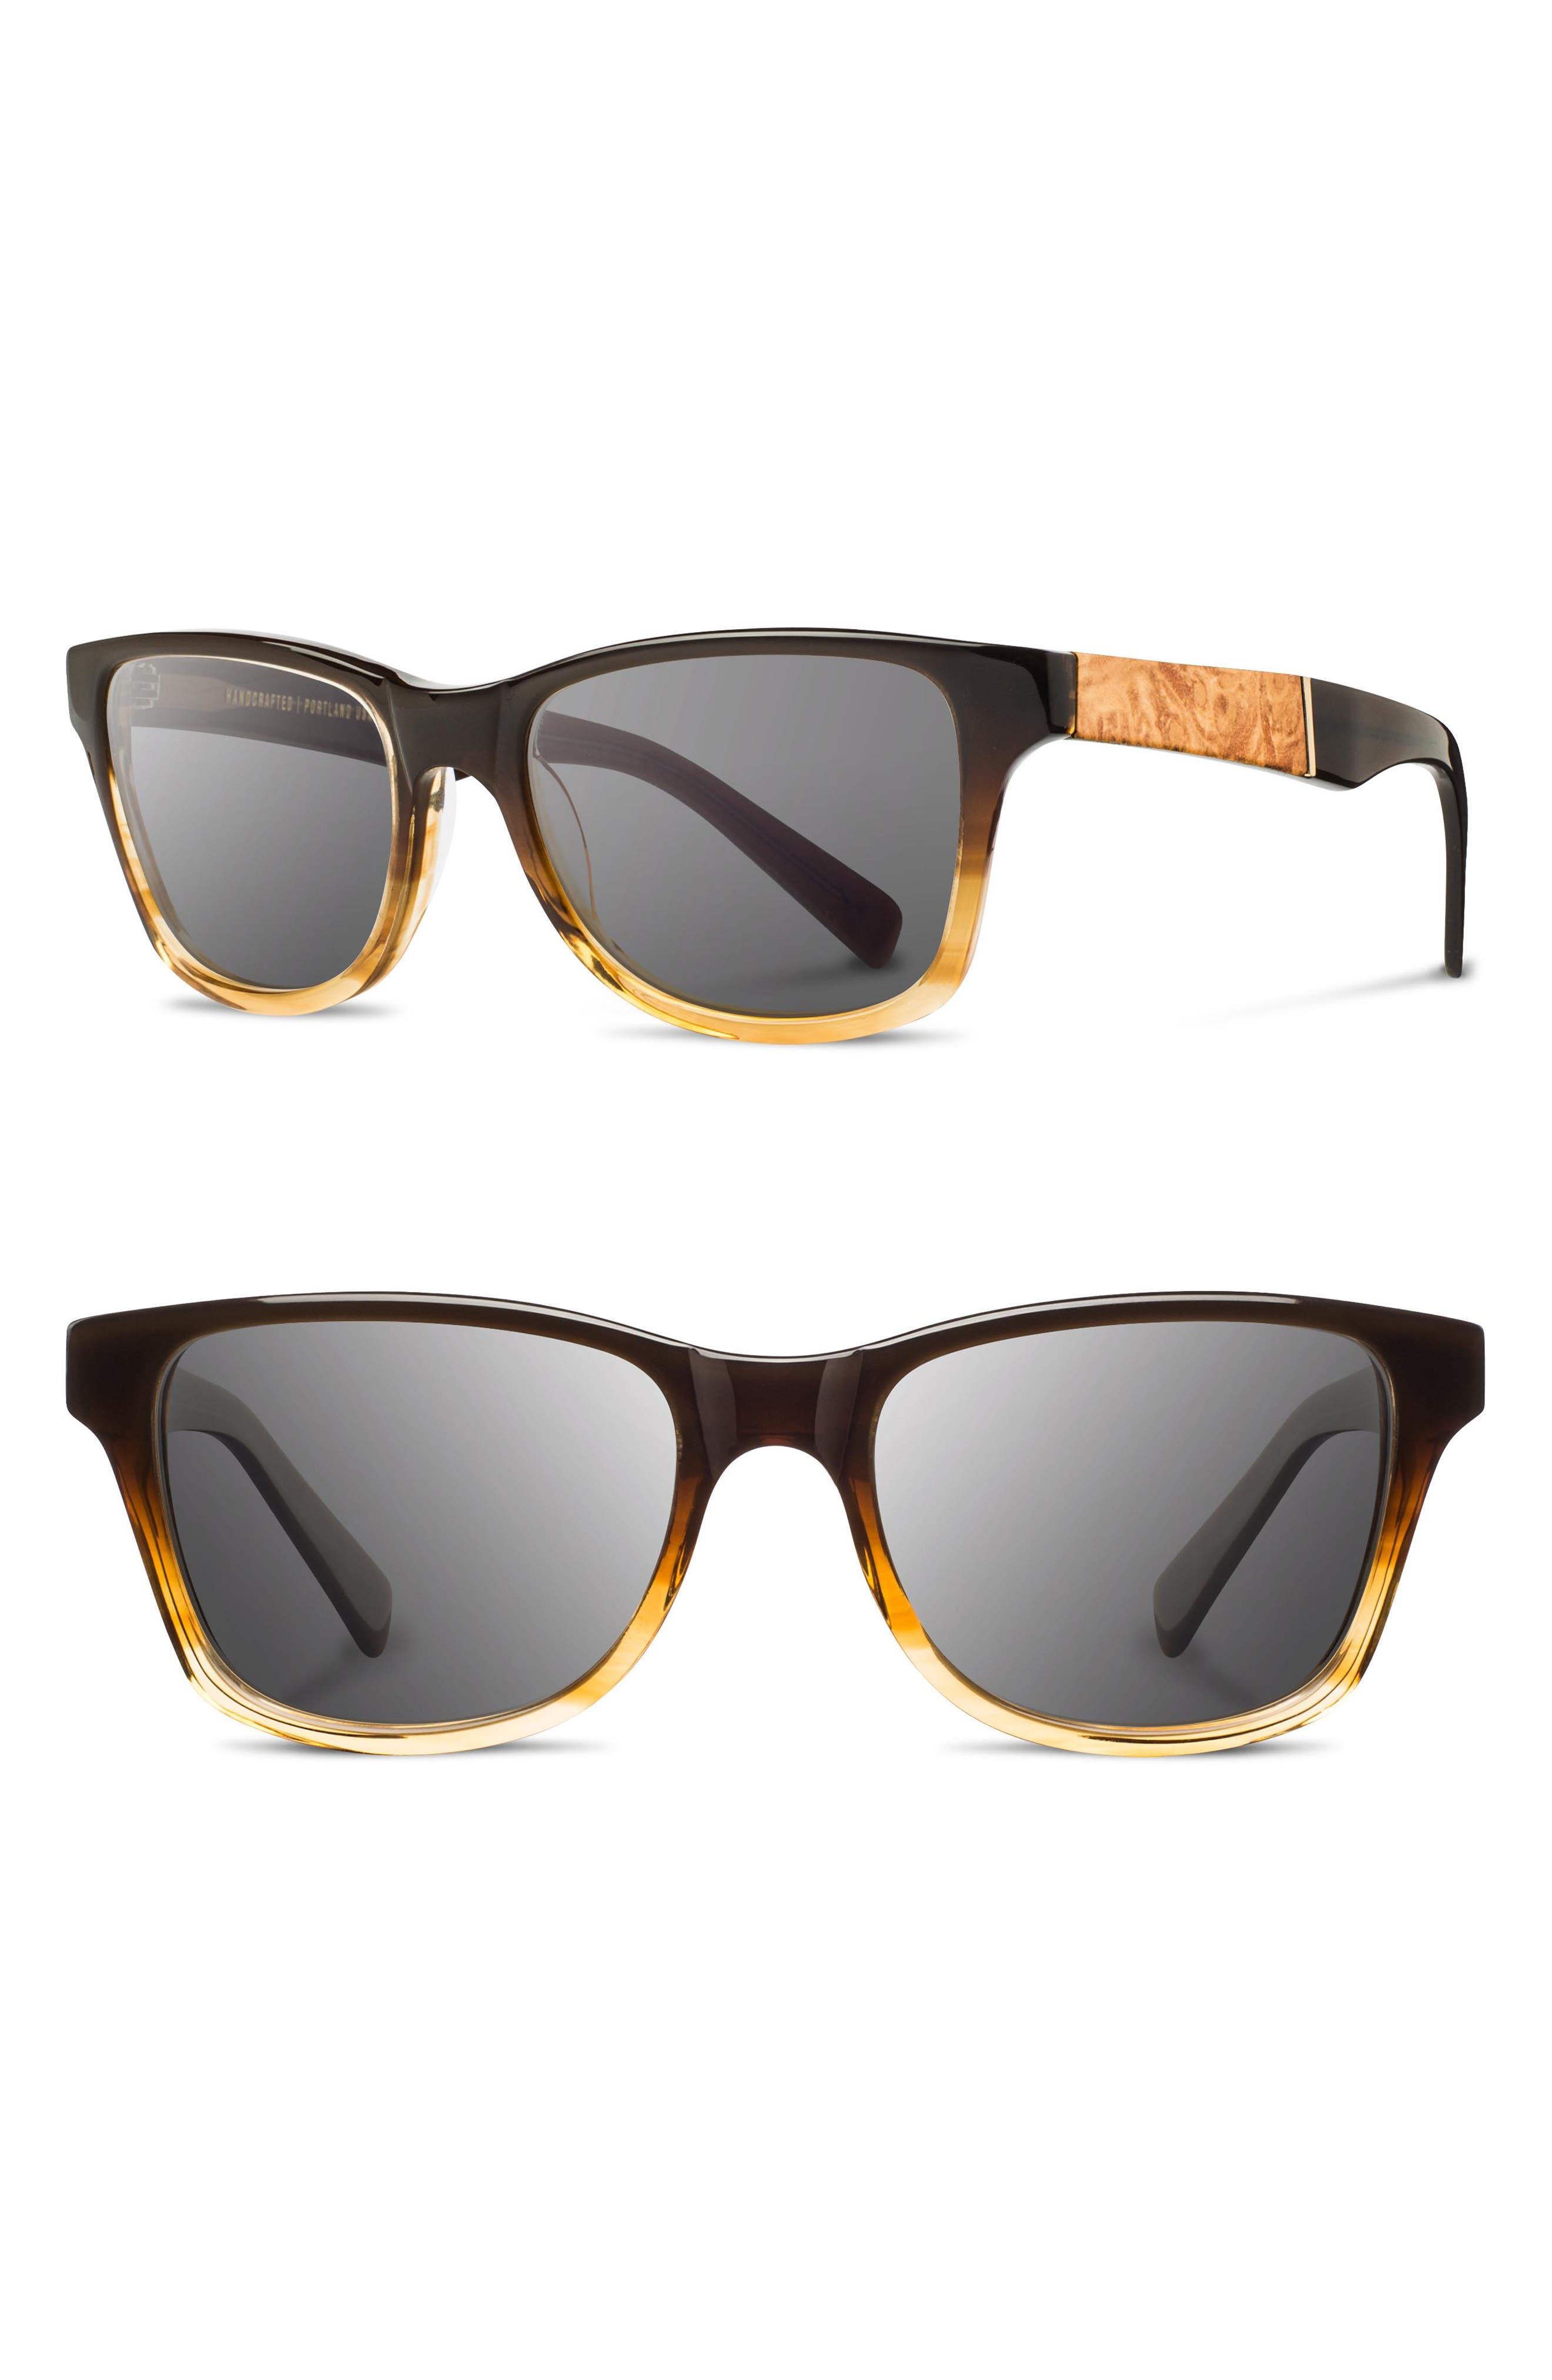 'Canby' 53mm Sunglasses,                             Main thumbnail 1, color,                             300